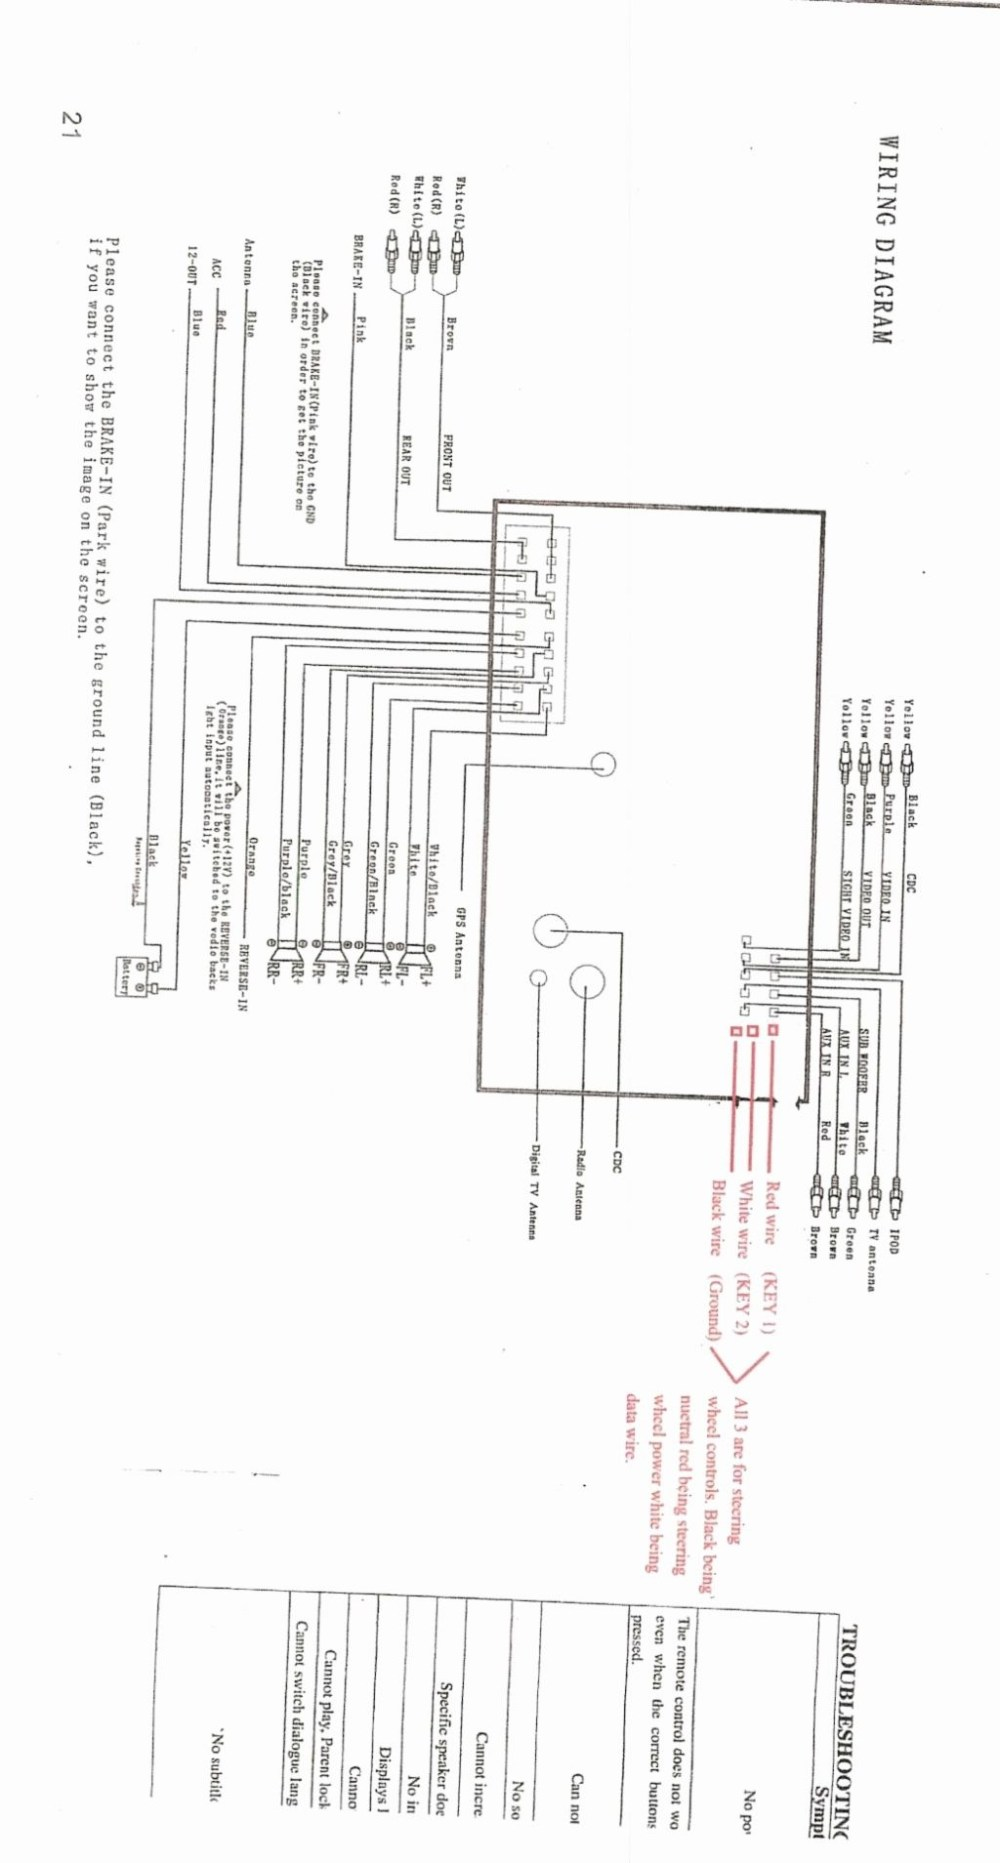 medium resolution of  armstrong furnaces diagrams white rodgers control wiring diagram white rodgers manuals white on white rodgers air conditioning